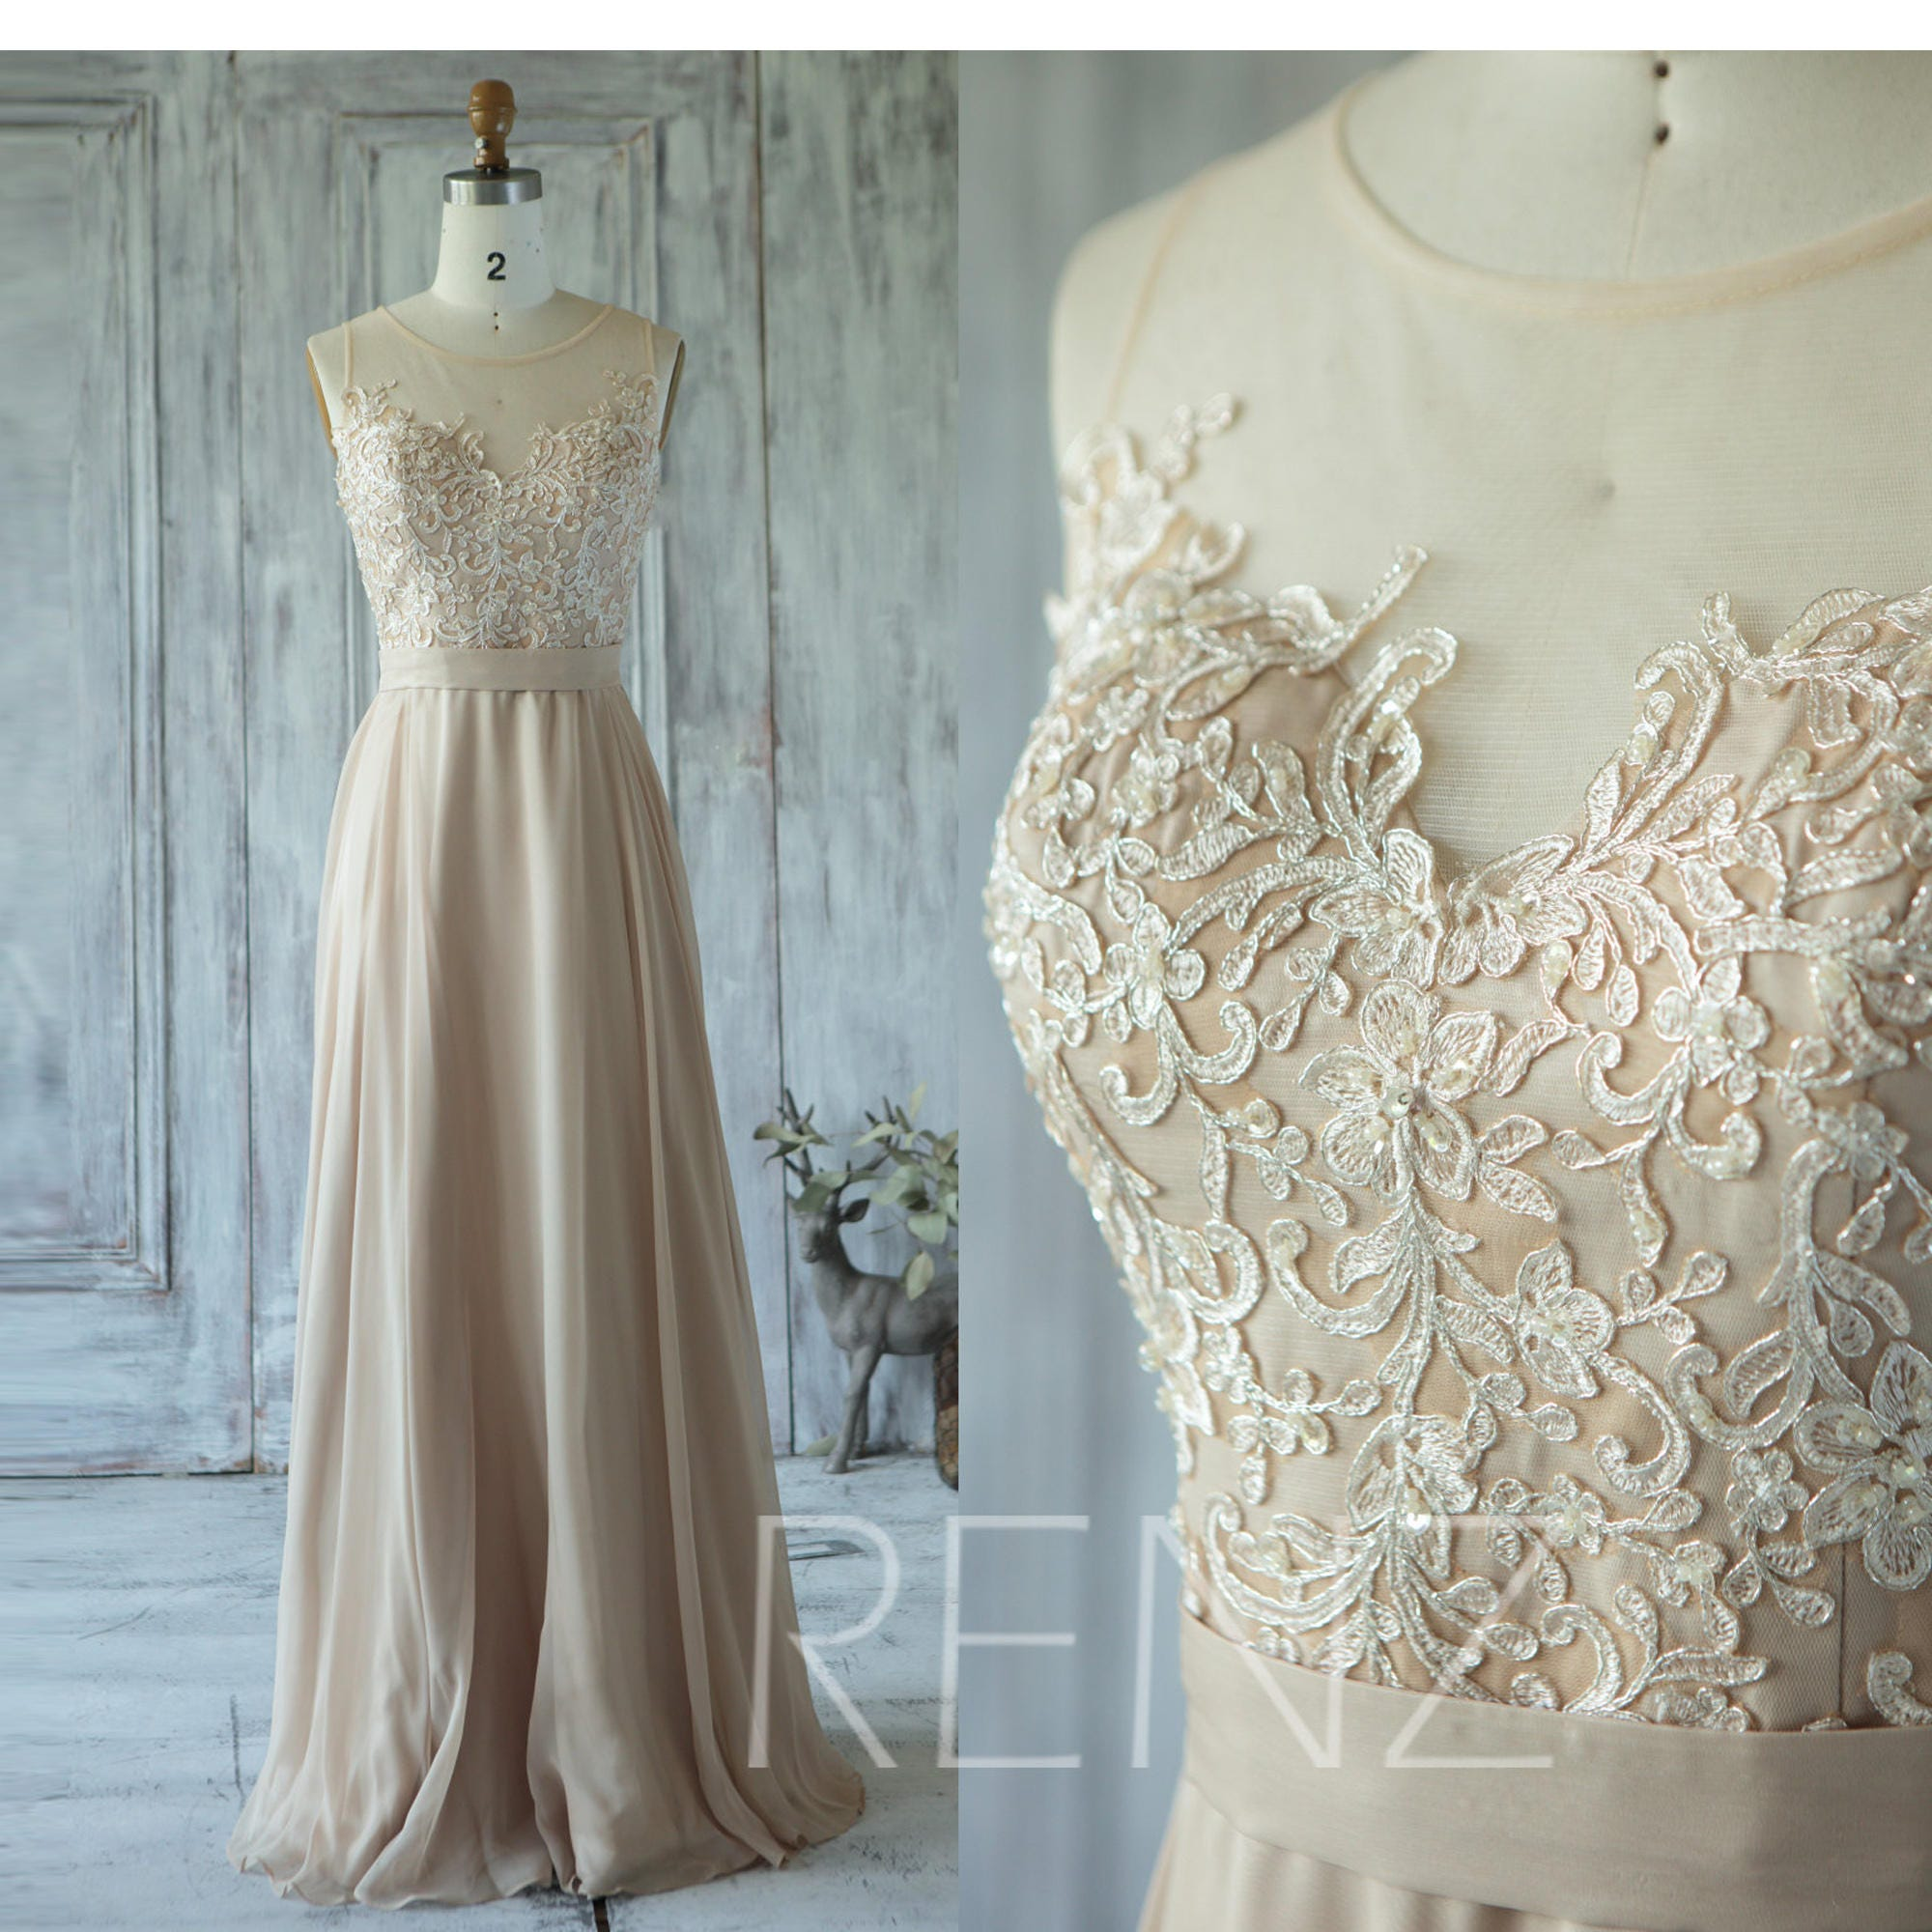 Champagne bridesmaid dress tulle illusion wedding dress zoom ombrellifo Images